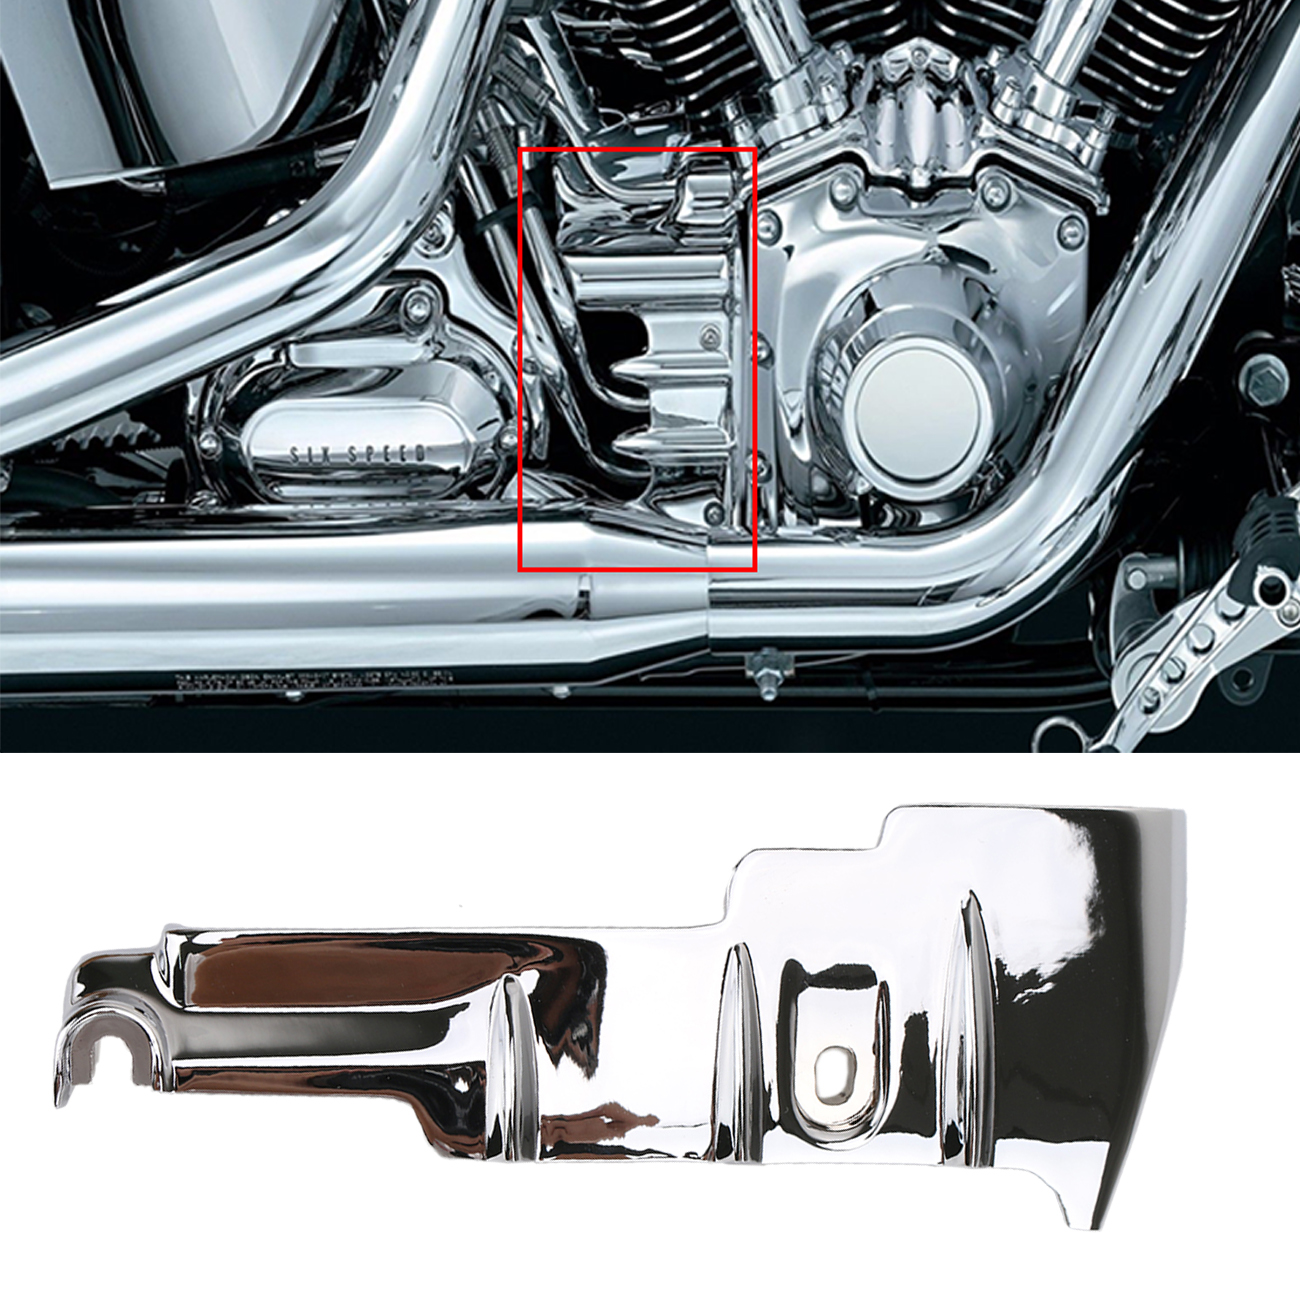 1Set Motorcycle Chrome Cylinder Base Side Cover For Harley Davidson Road King Street Glide Tri Glide 2010-2016 engine cover set with chrome plated pull starter cylinder cover side cover screws free shipping 85108